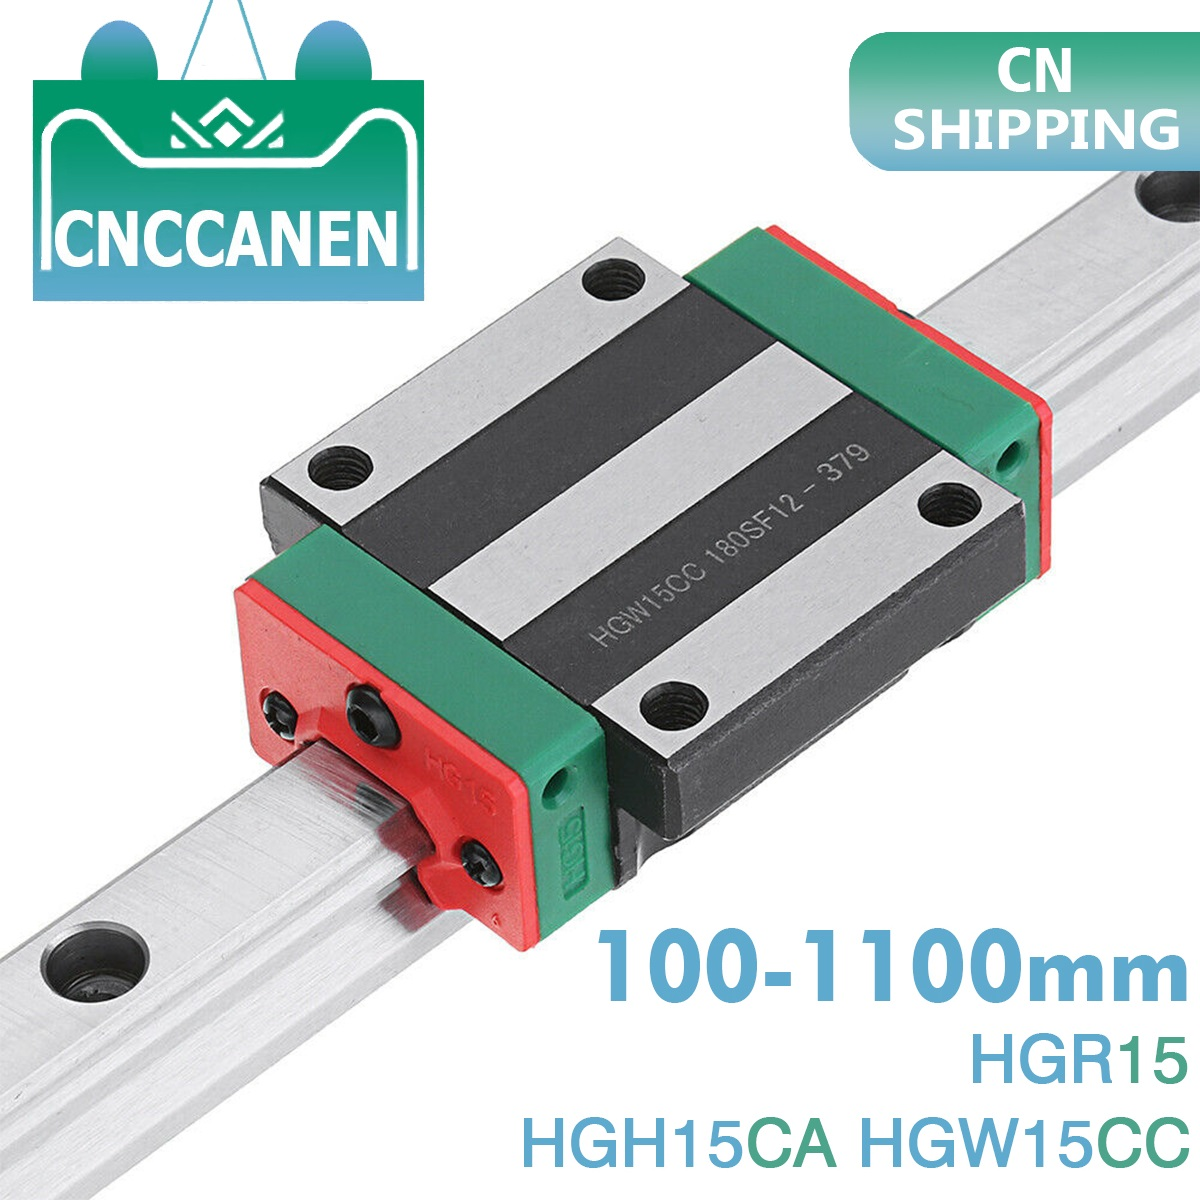 HGH15CA Carriage Block for Linear Guide Rail HGR15 CNC Engraving Router